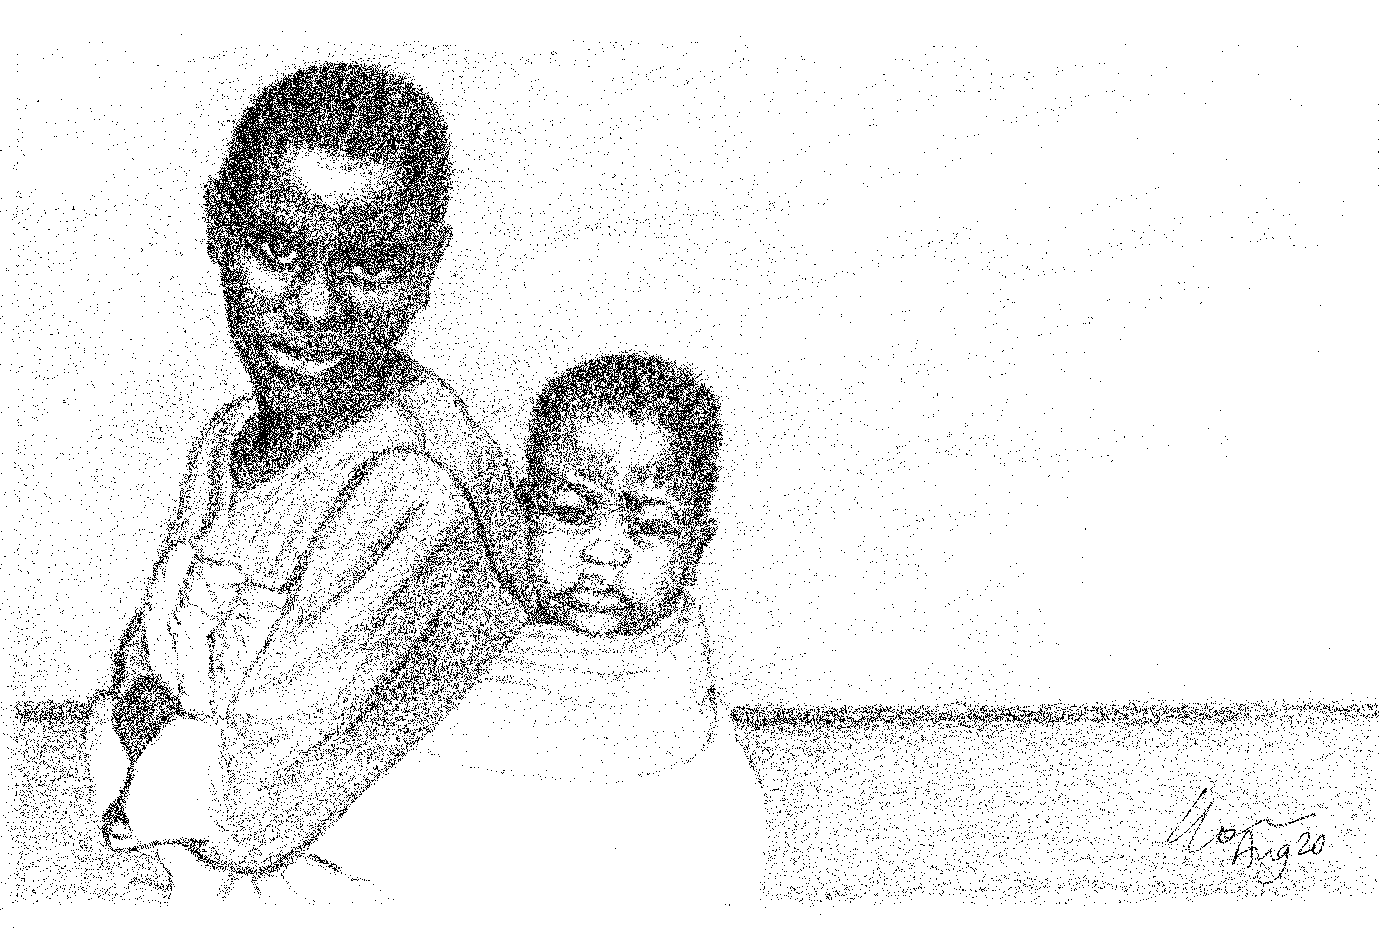 a black and white pencil drawing of a black woman with short hair who looks directly to the viewer. She is carrying her baby on her back in a cloth.